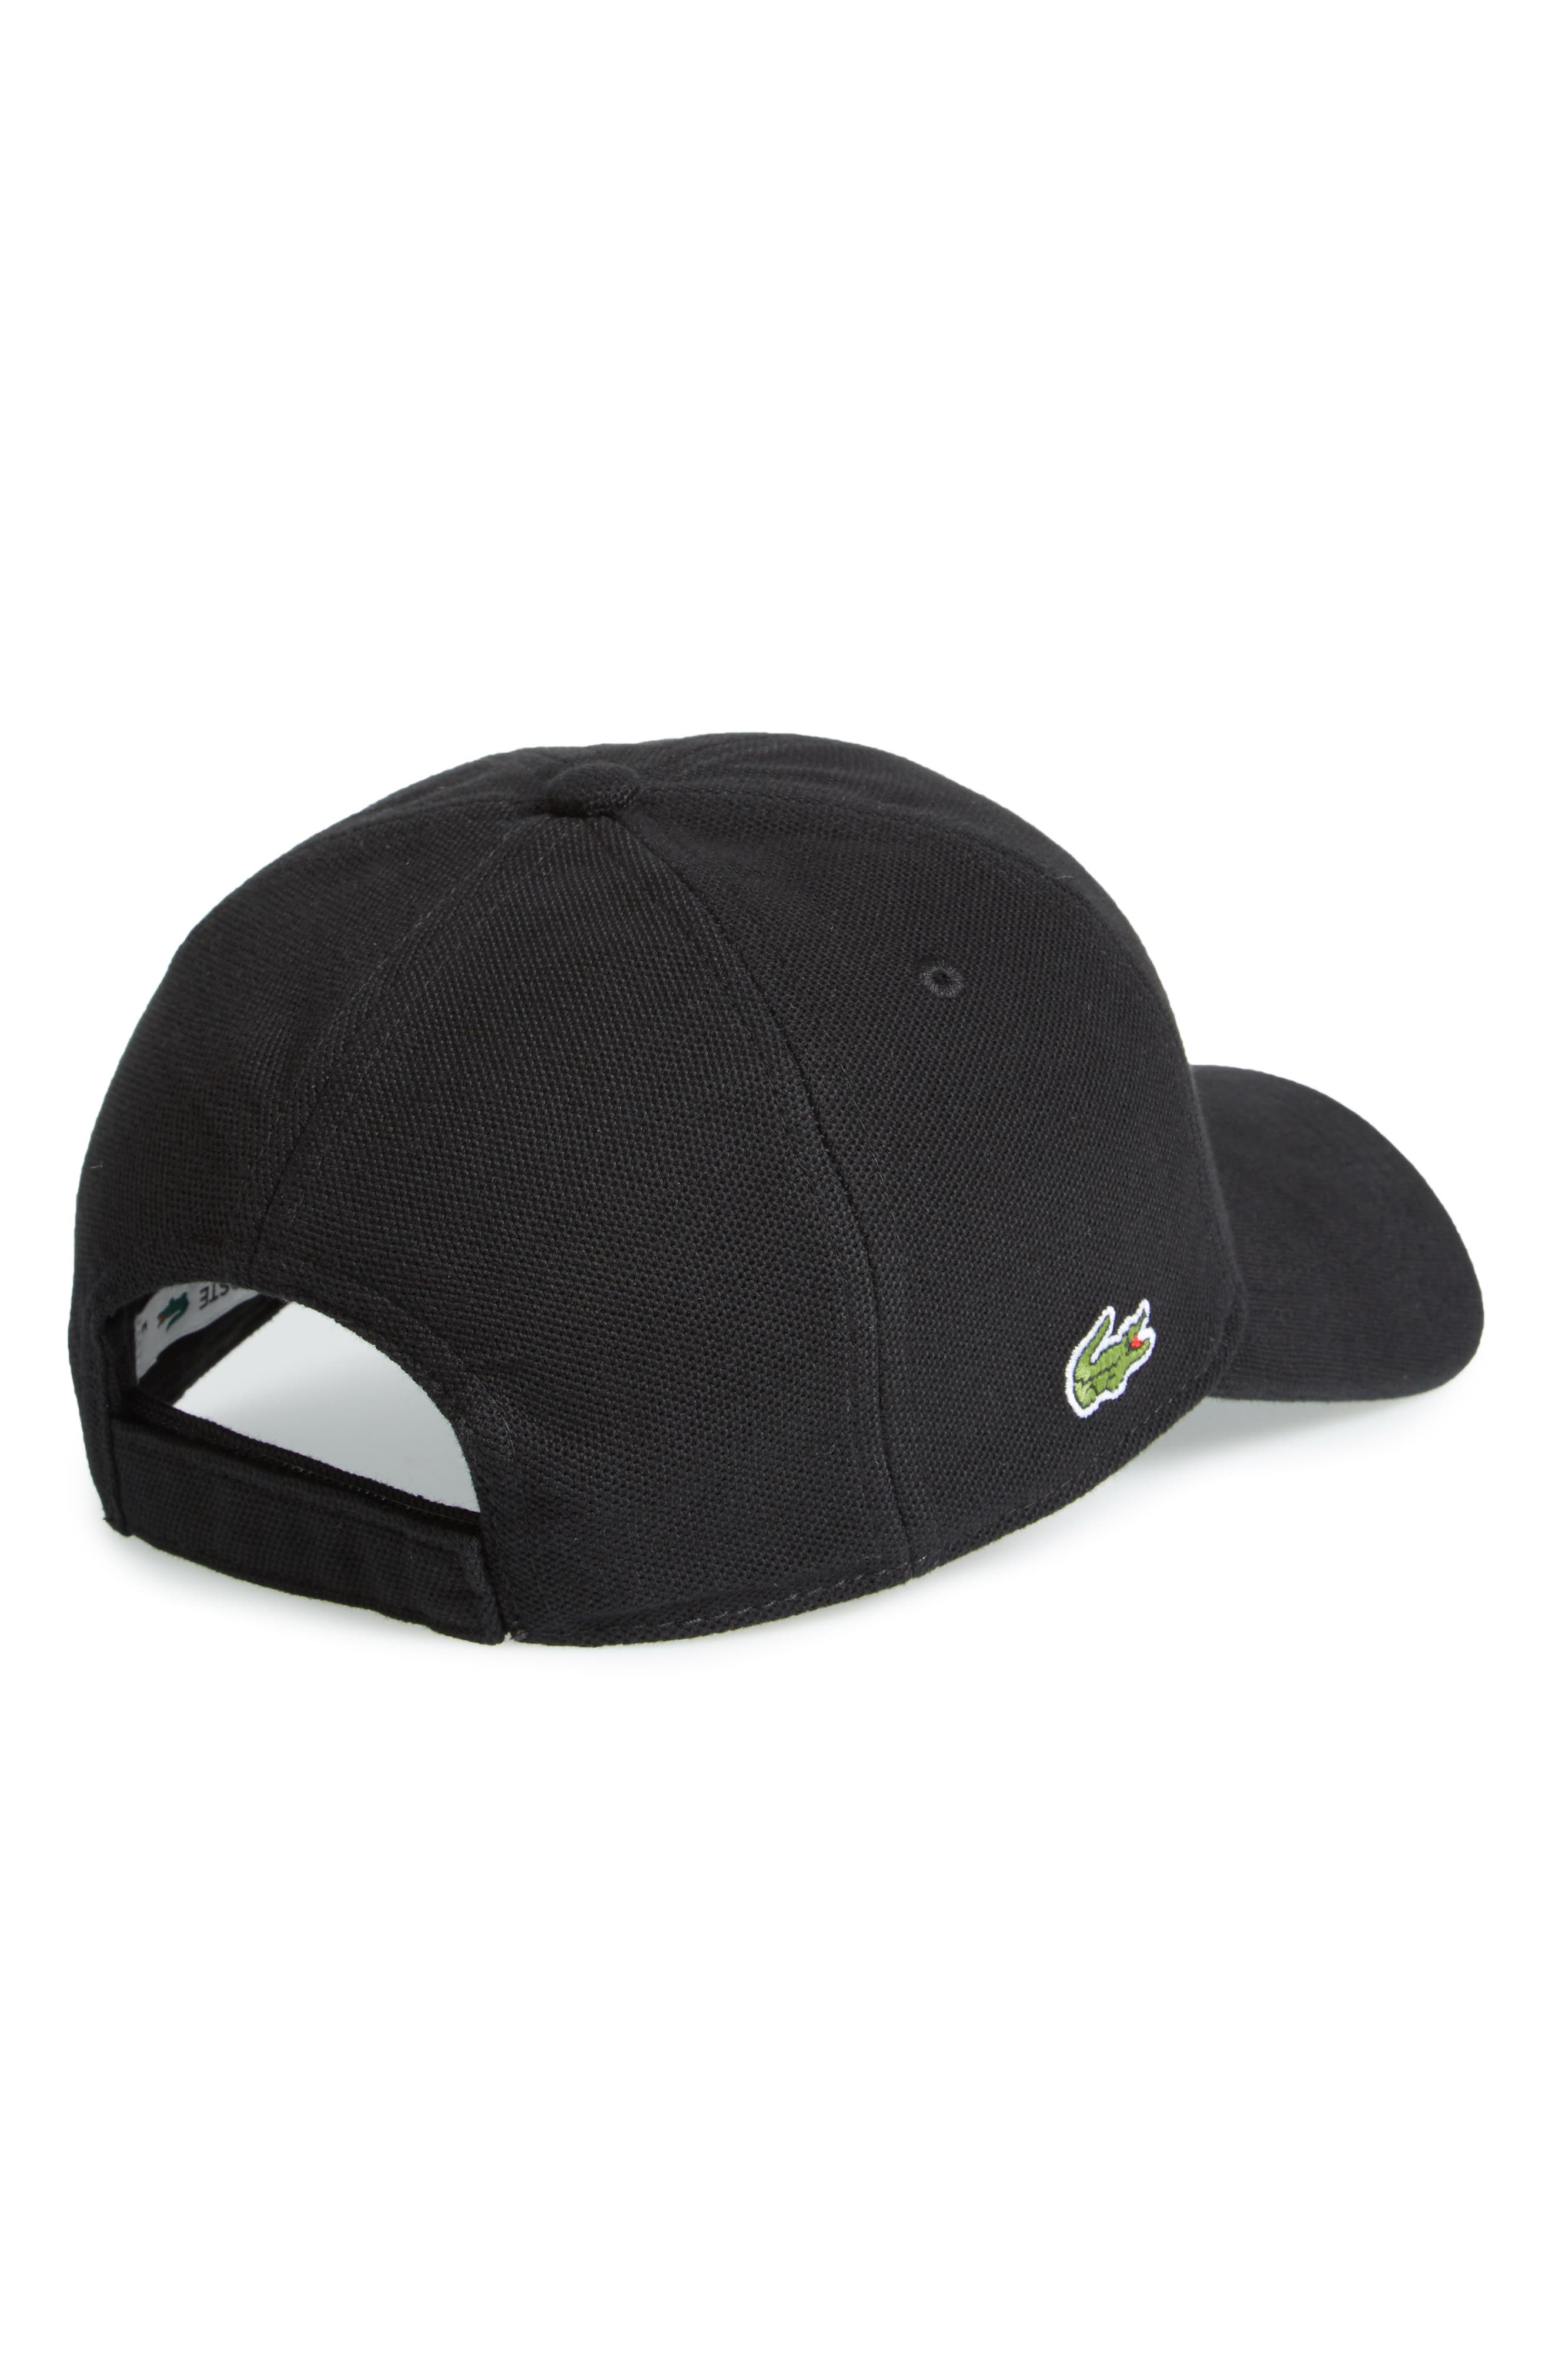 Croc Cotton Baseball Cap,                             Alternate thumbnail 2, color,                             001